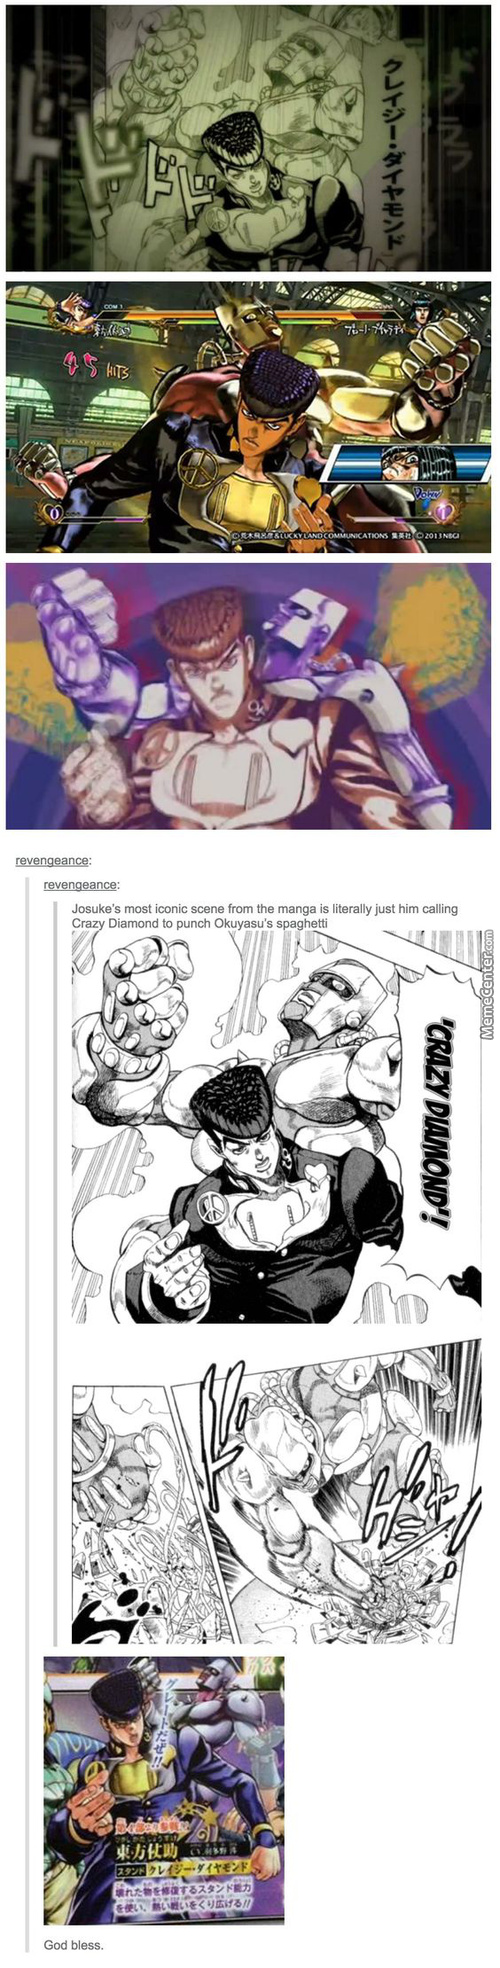 Other Joestars Saved The World,but Josuke Punched A Plate Of Spaghetti.